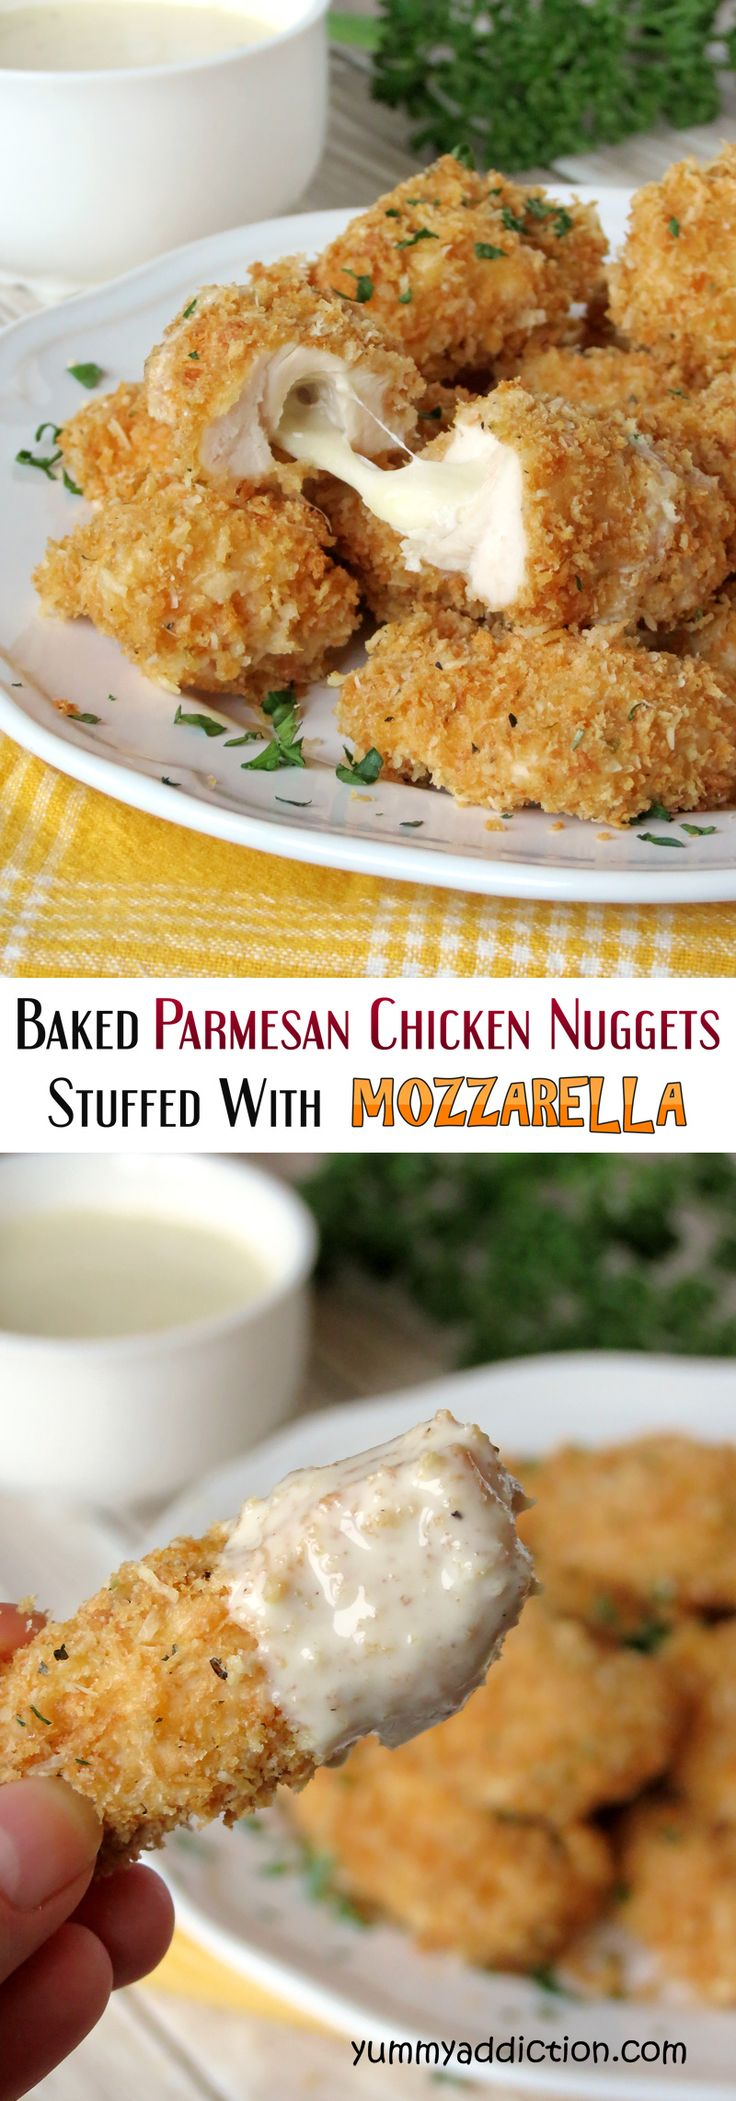 Crispy Baked Parmesan Chicken Nuggets Stuffed With Mozzarella